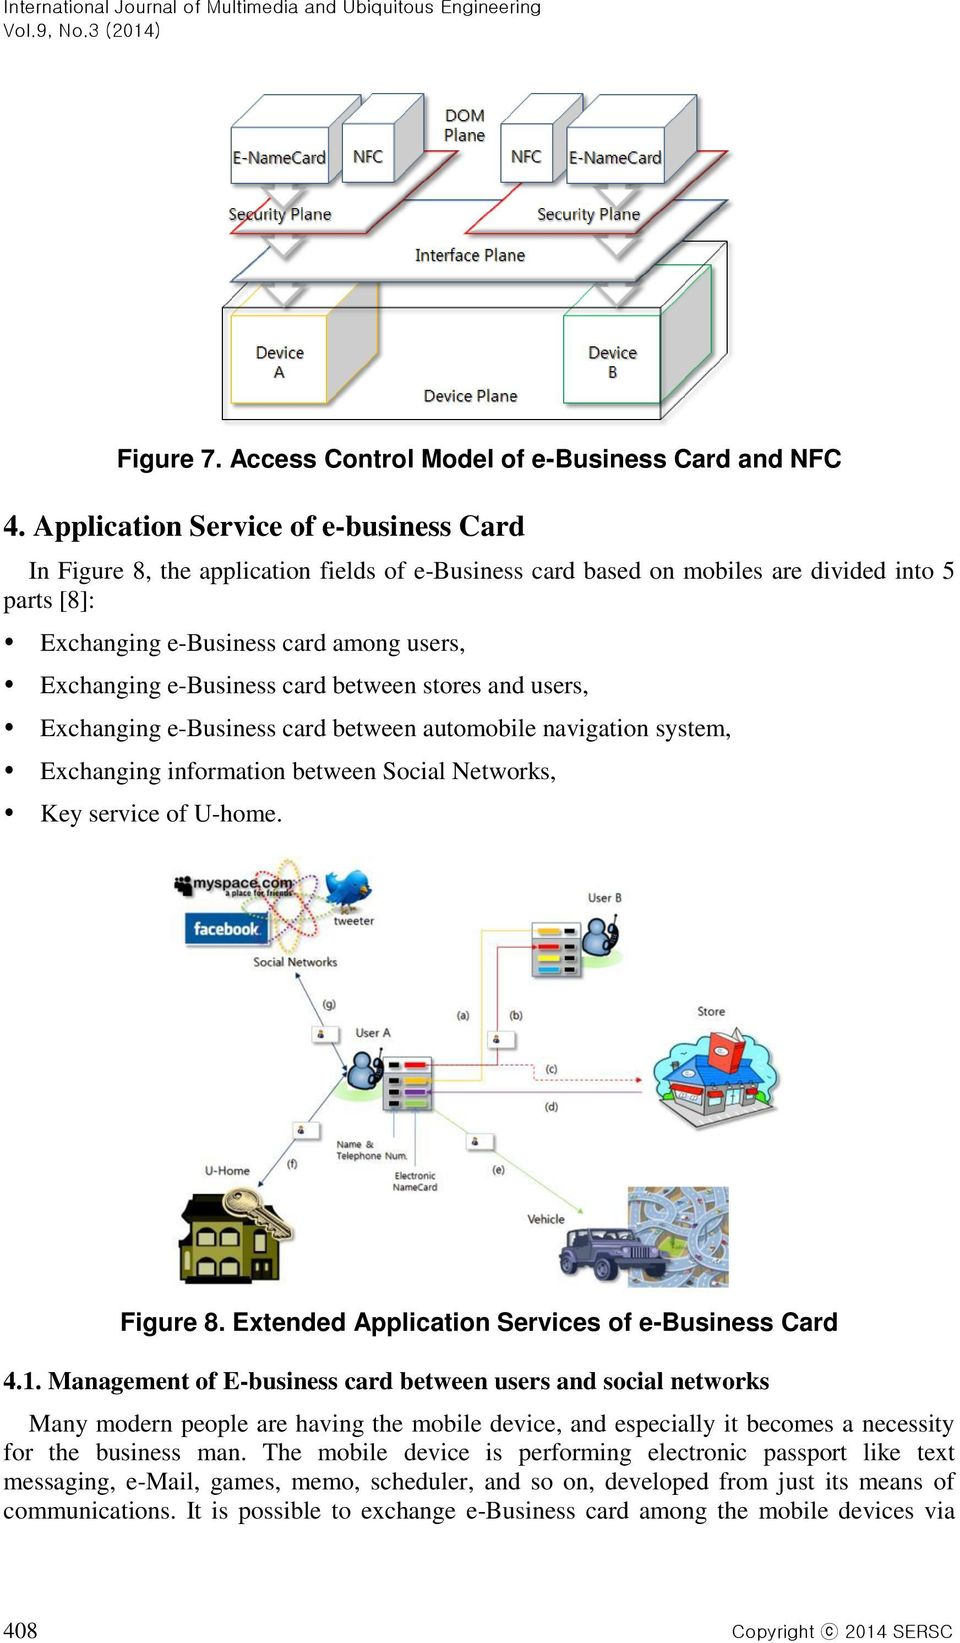 e-business card between stores and users, Exchanging e-business card between automobile navigation system, Exchanging information between Social Networks, Key service of U-home. Figure 8.